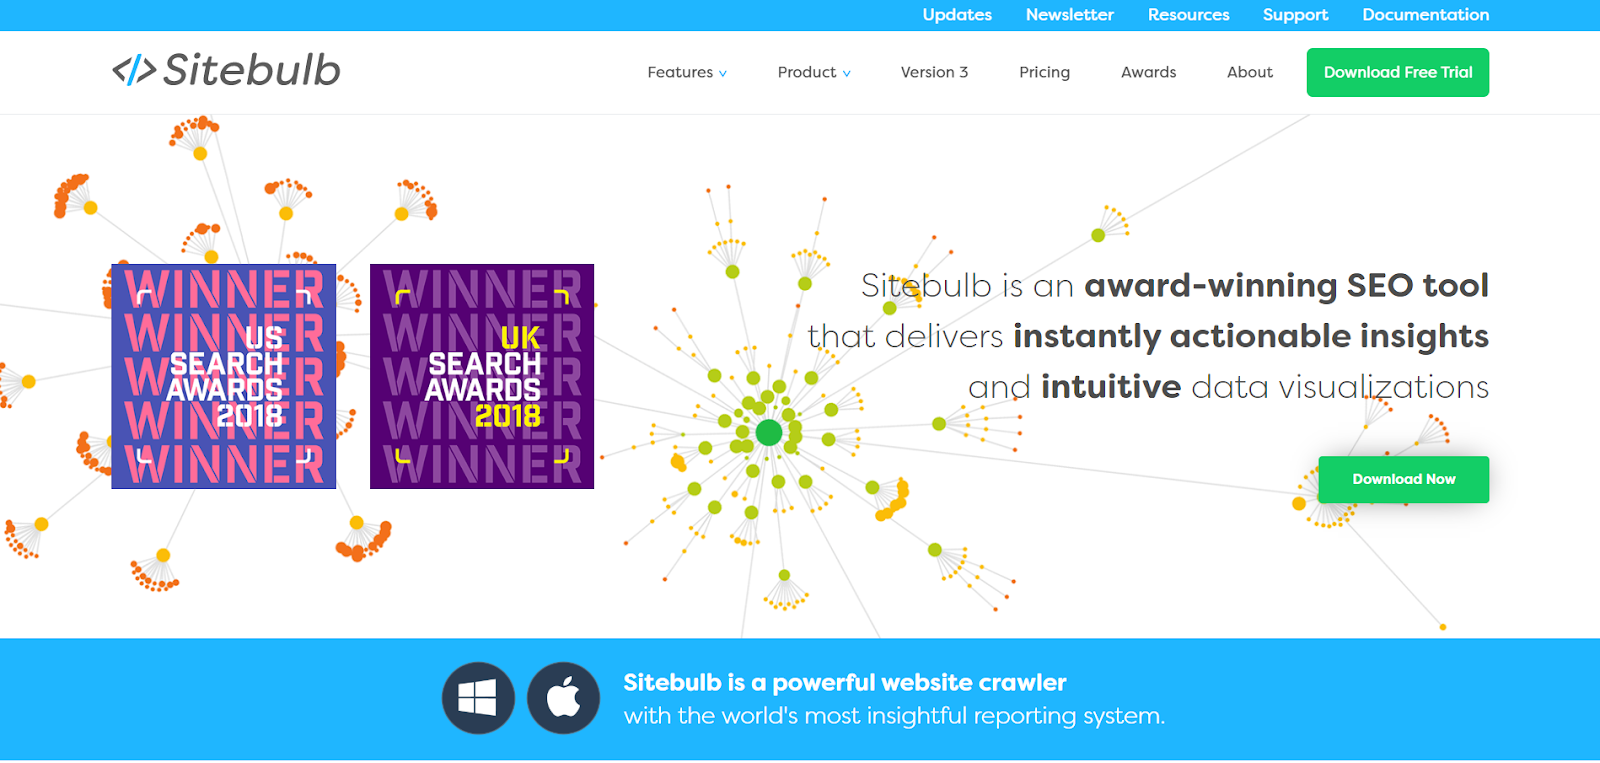 Sitebulb's landing page